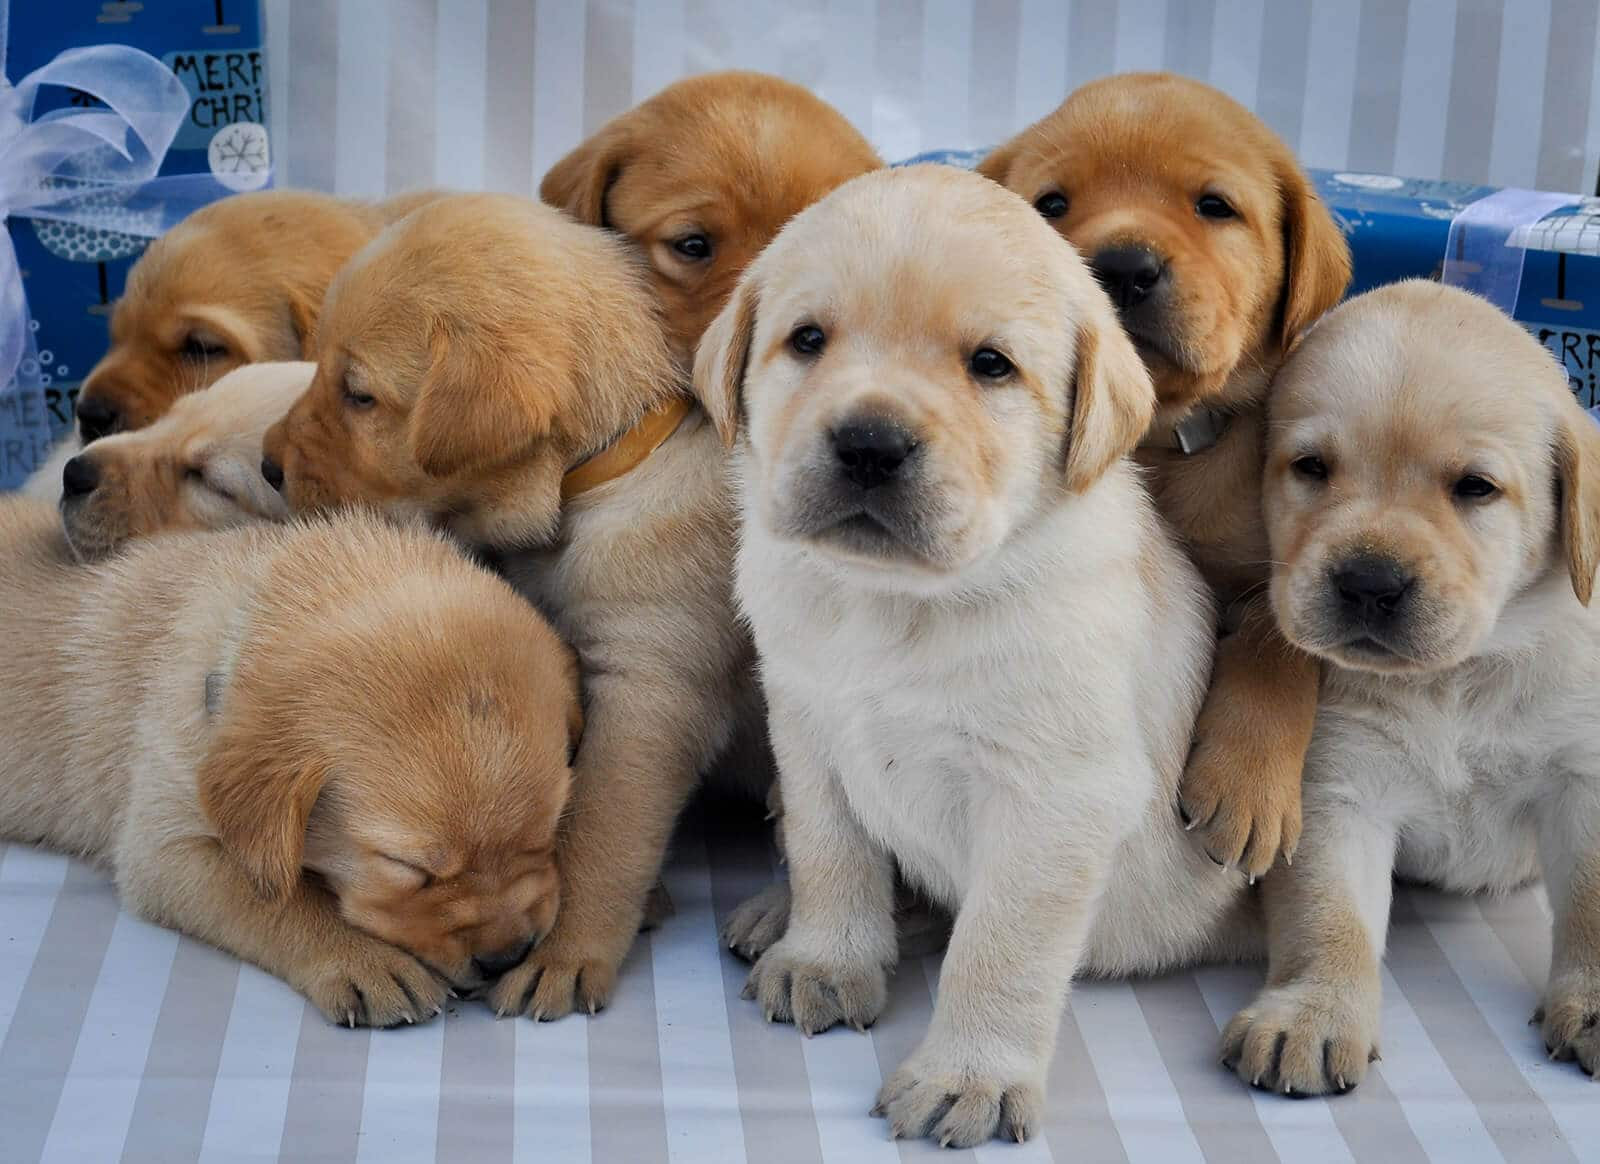 This image shows 8 beautiful yellow labrador puppies from the first litter born through our program.